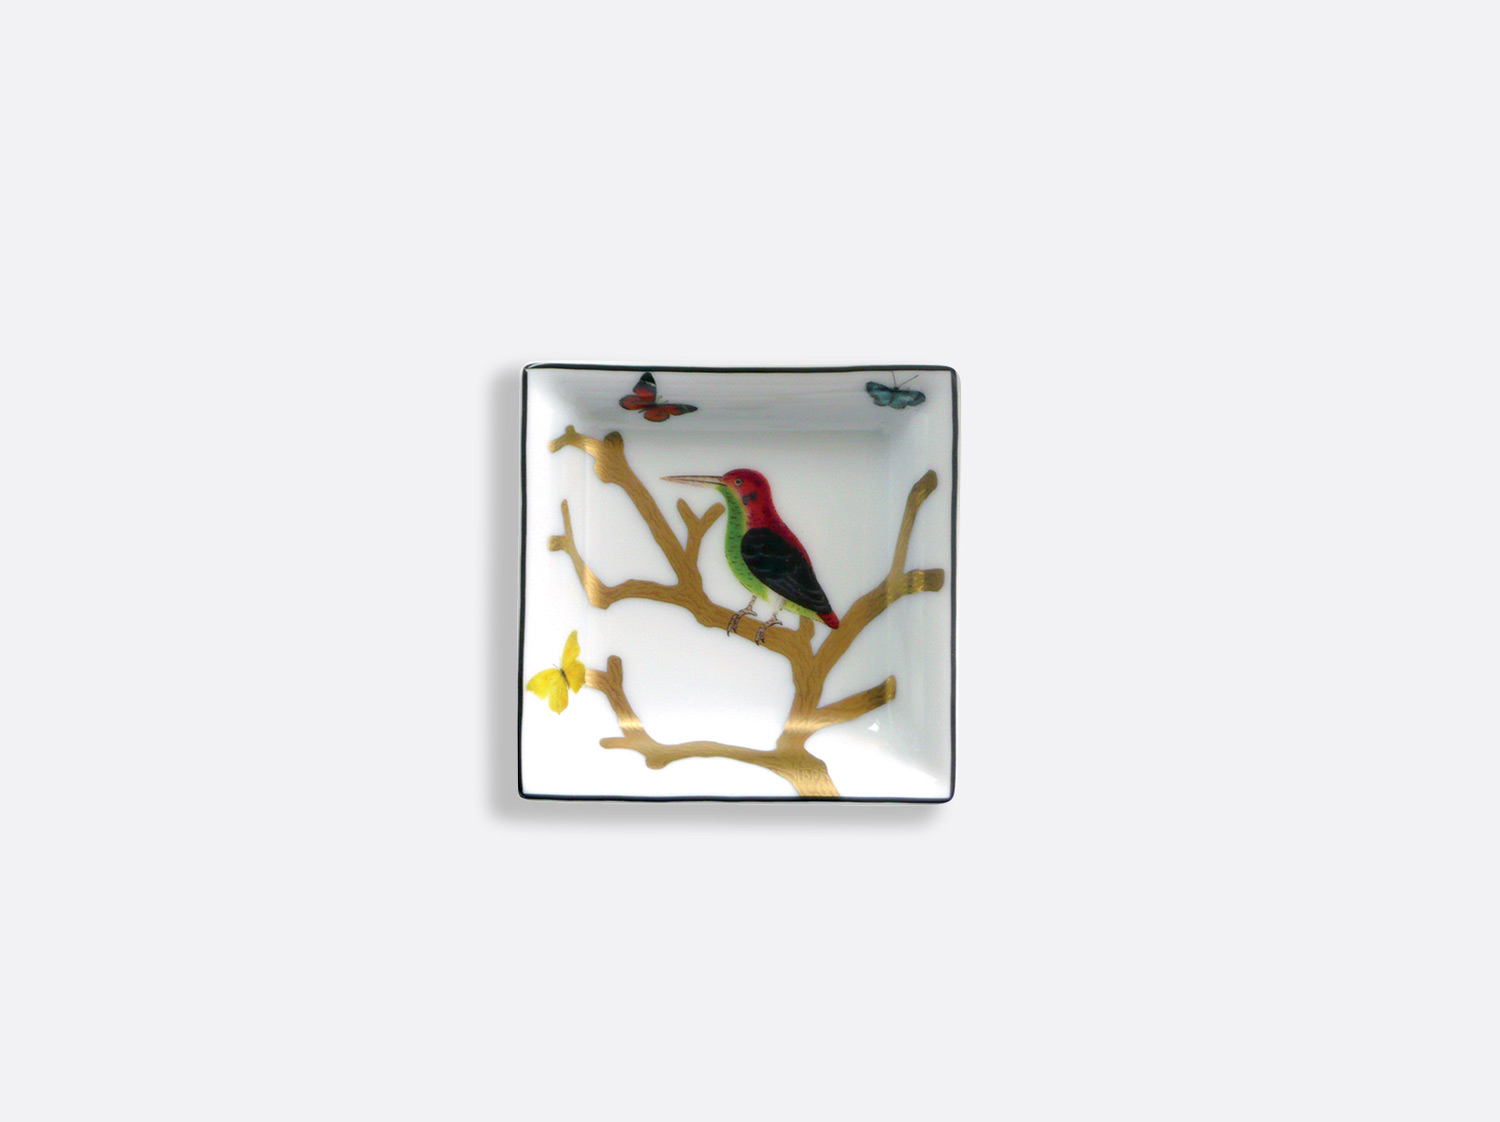 China Small square dish 8 cm x 8 cm of the collection Aux oiseaux | Bernardaud